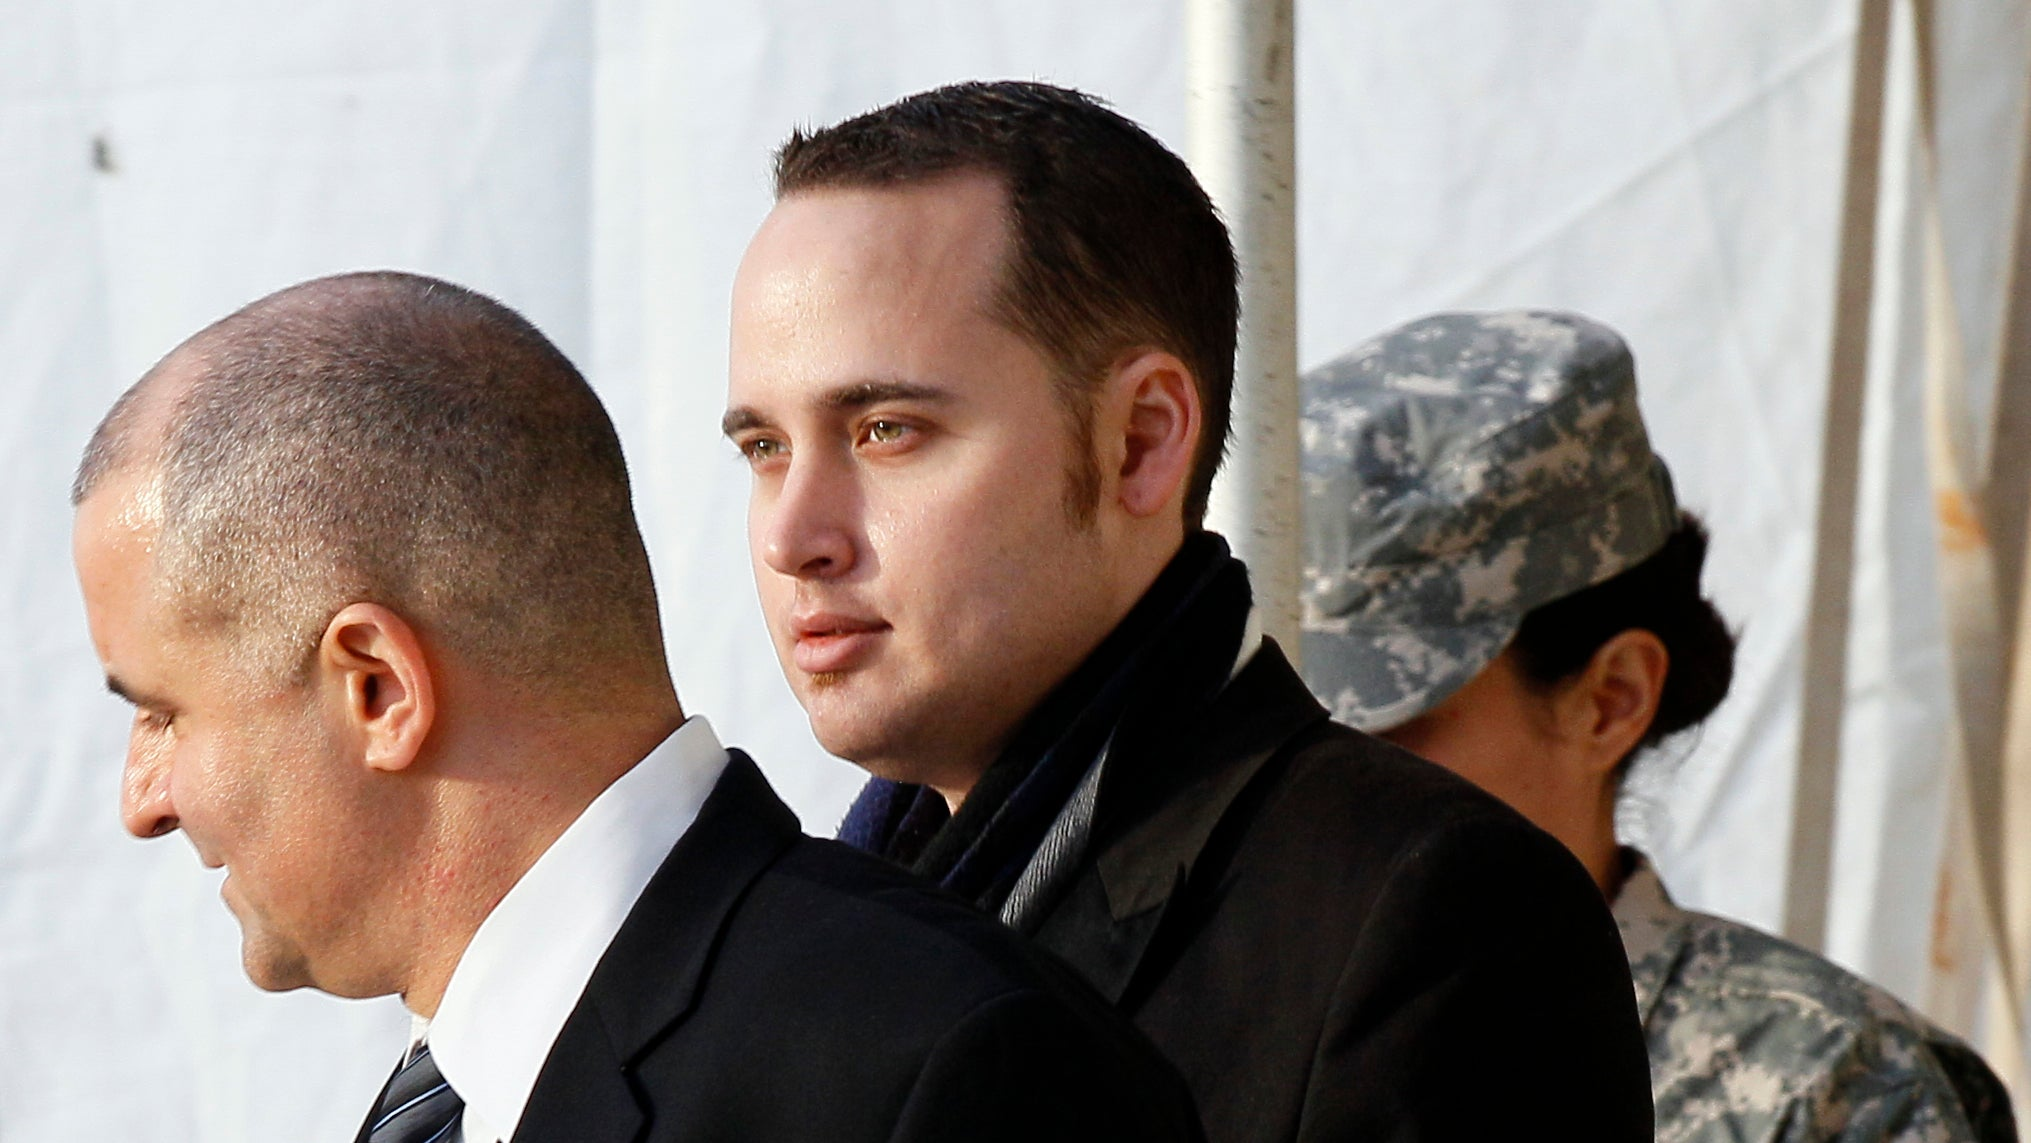 Adrian Lamo, Hacker Behind Breaches Of New York Times And Microsoft, Has Died